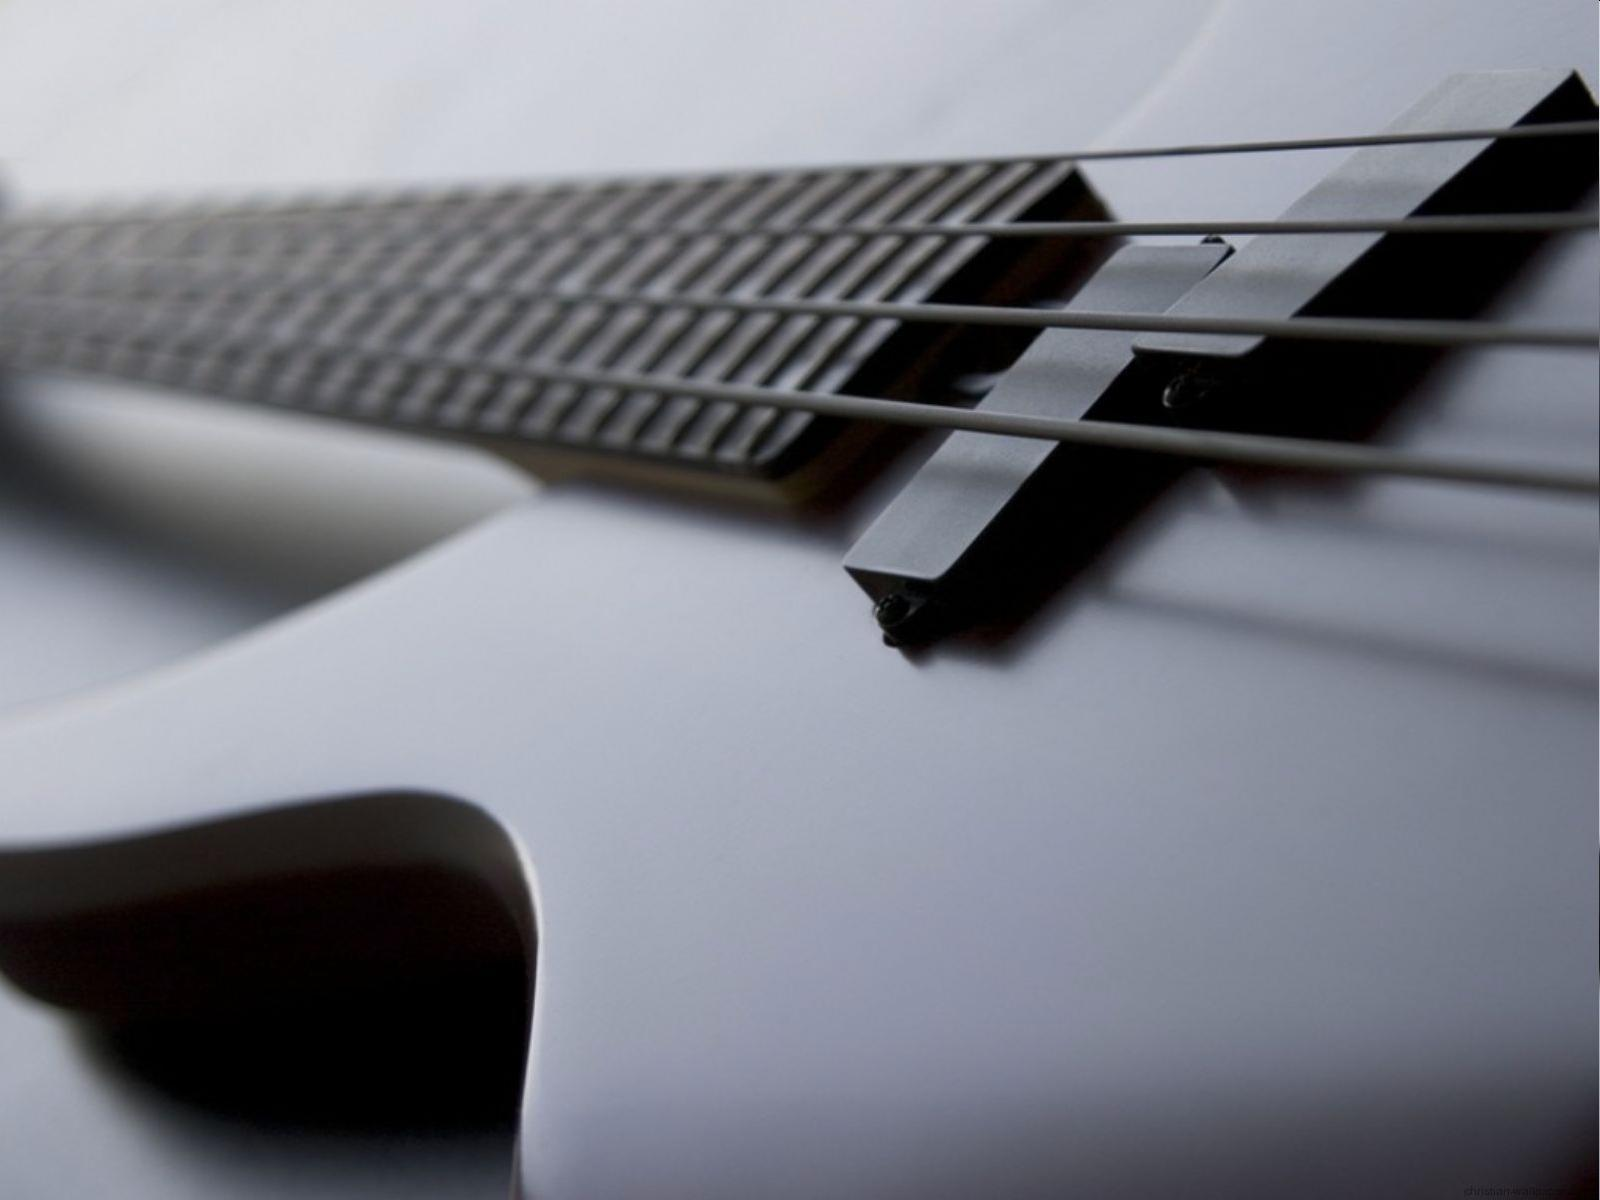 77 Bass Guitar Wallpaper On Wallpapersafari